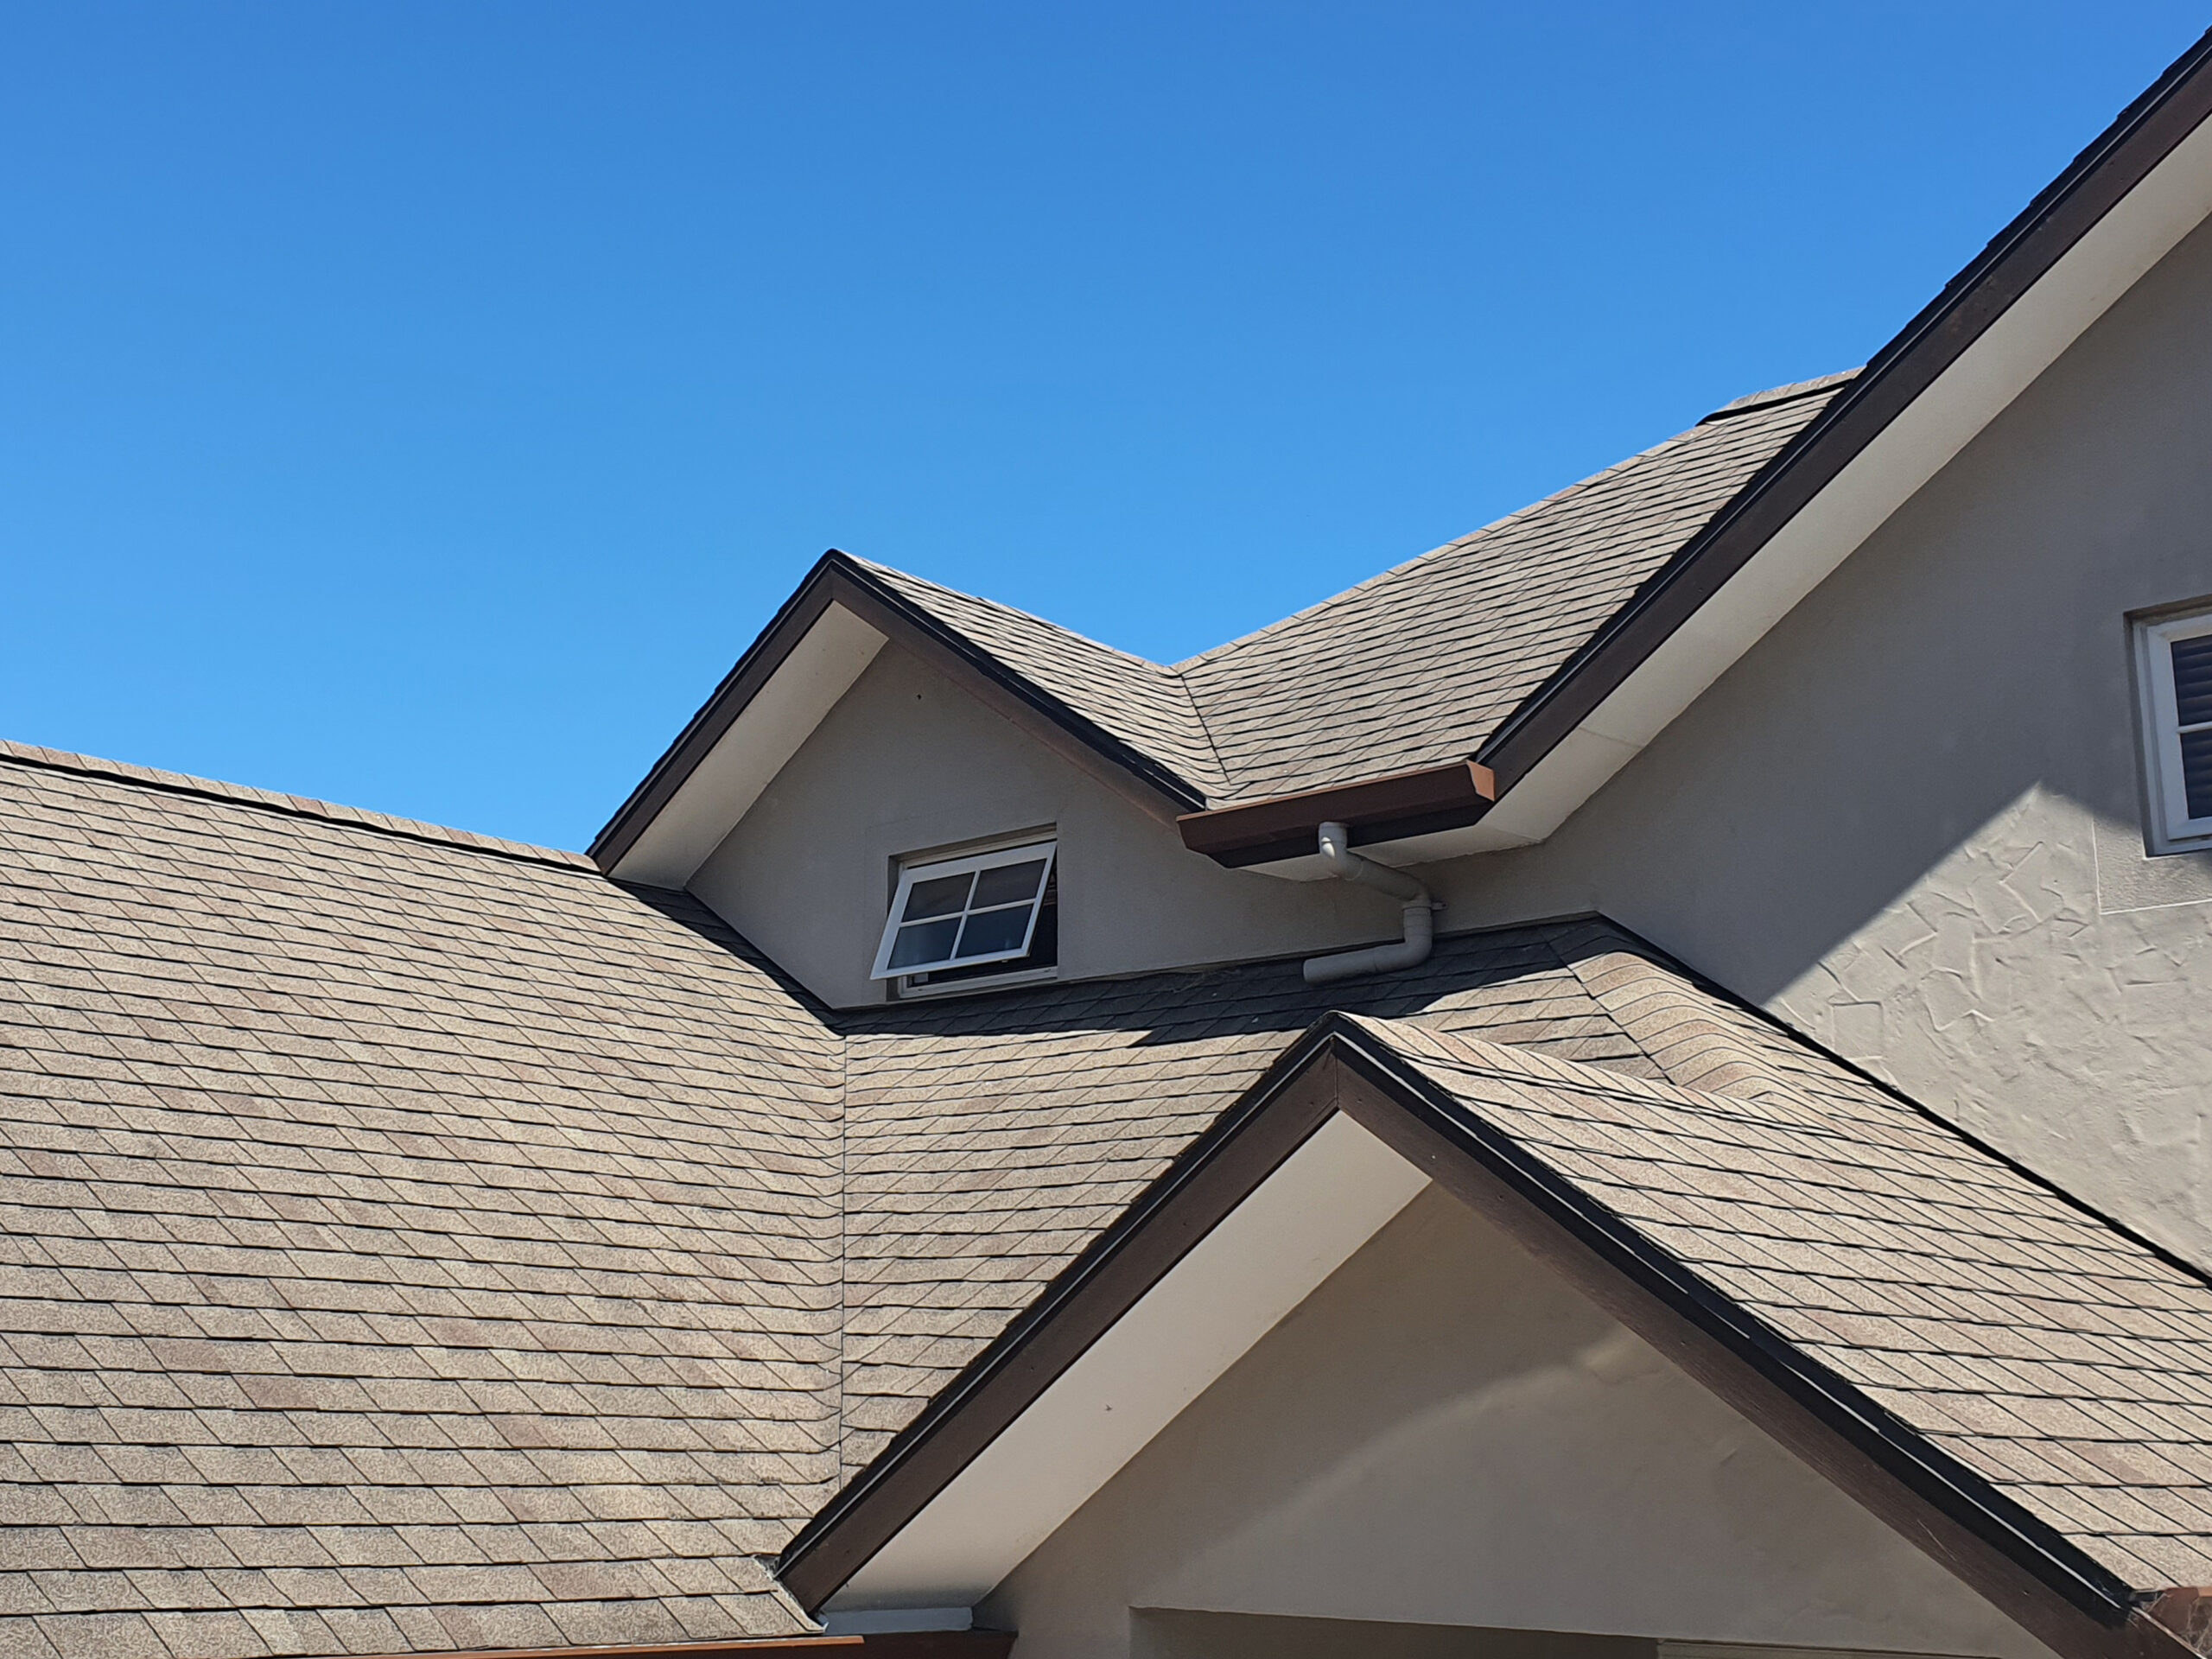 Roof Cleaning - Asphalt Shingle cleaned with Bio-Shield®